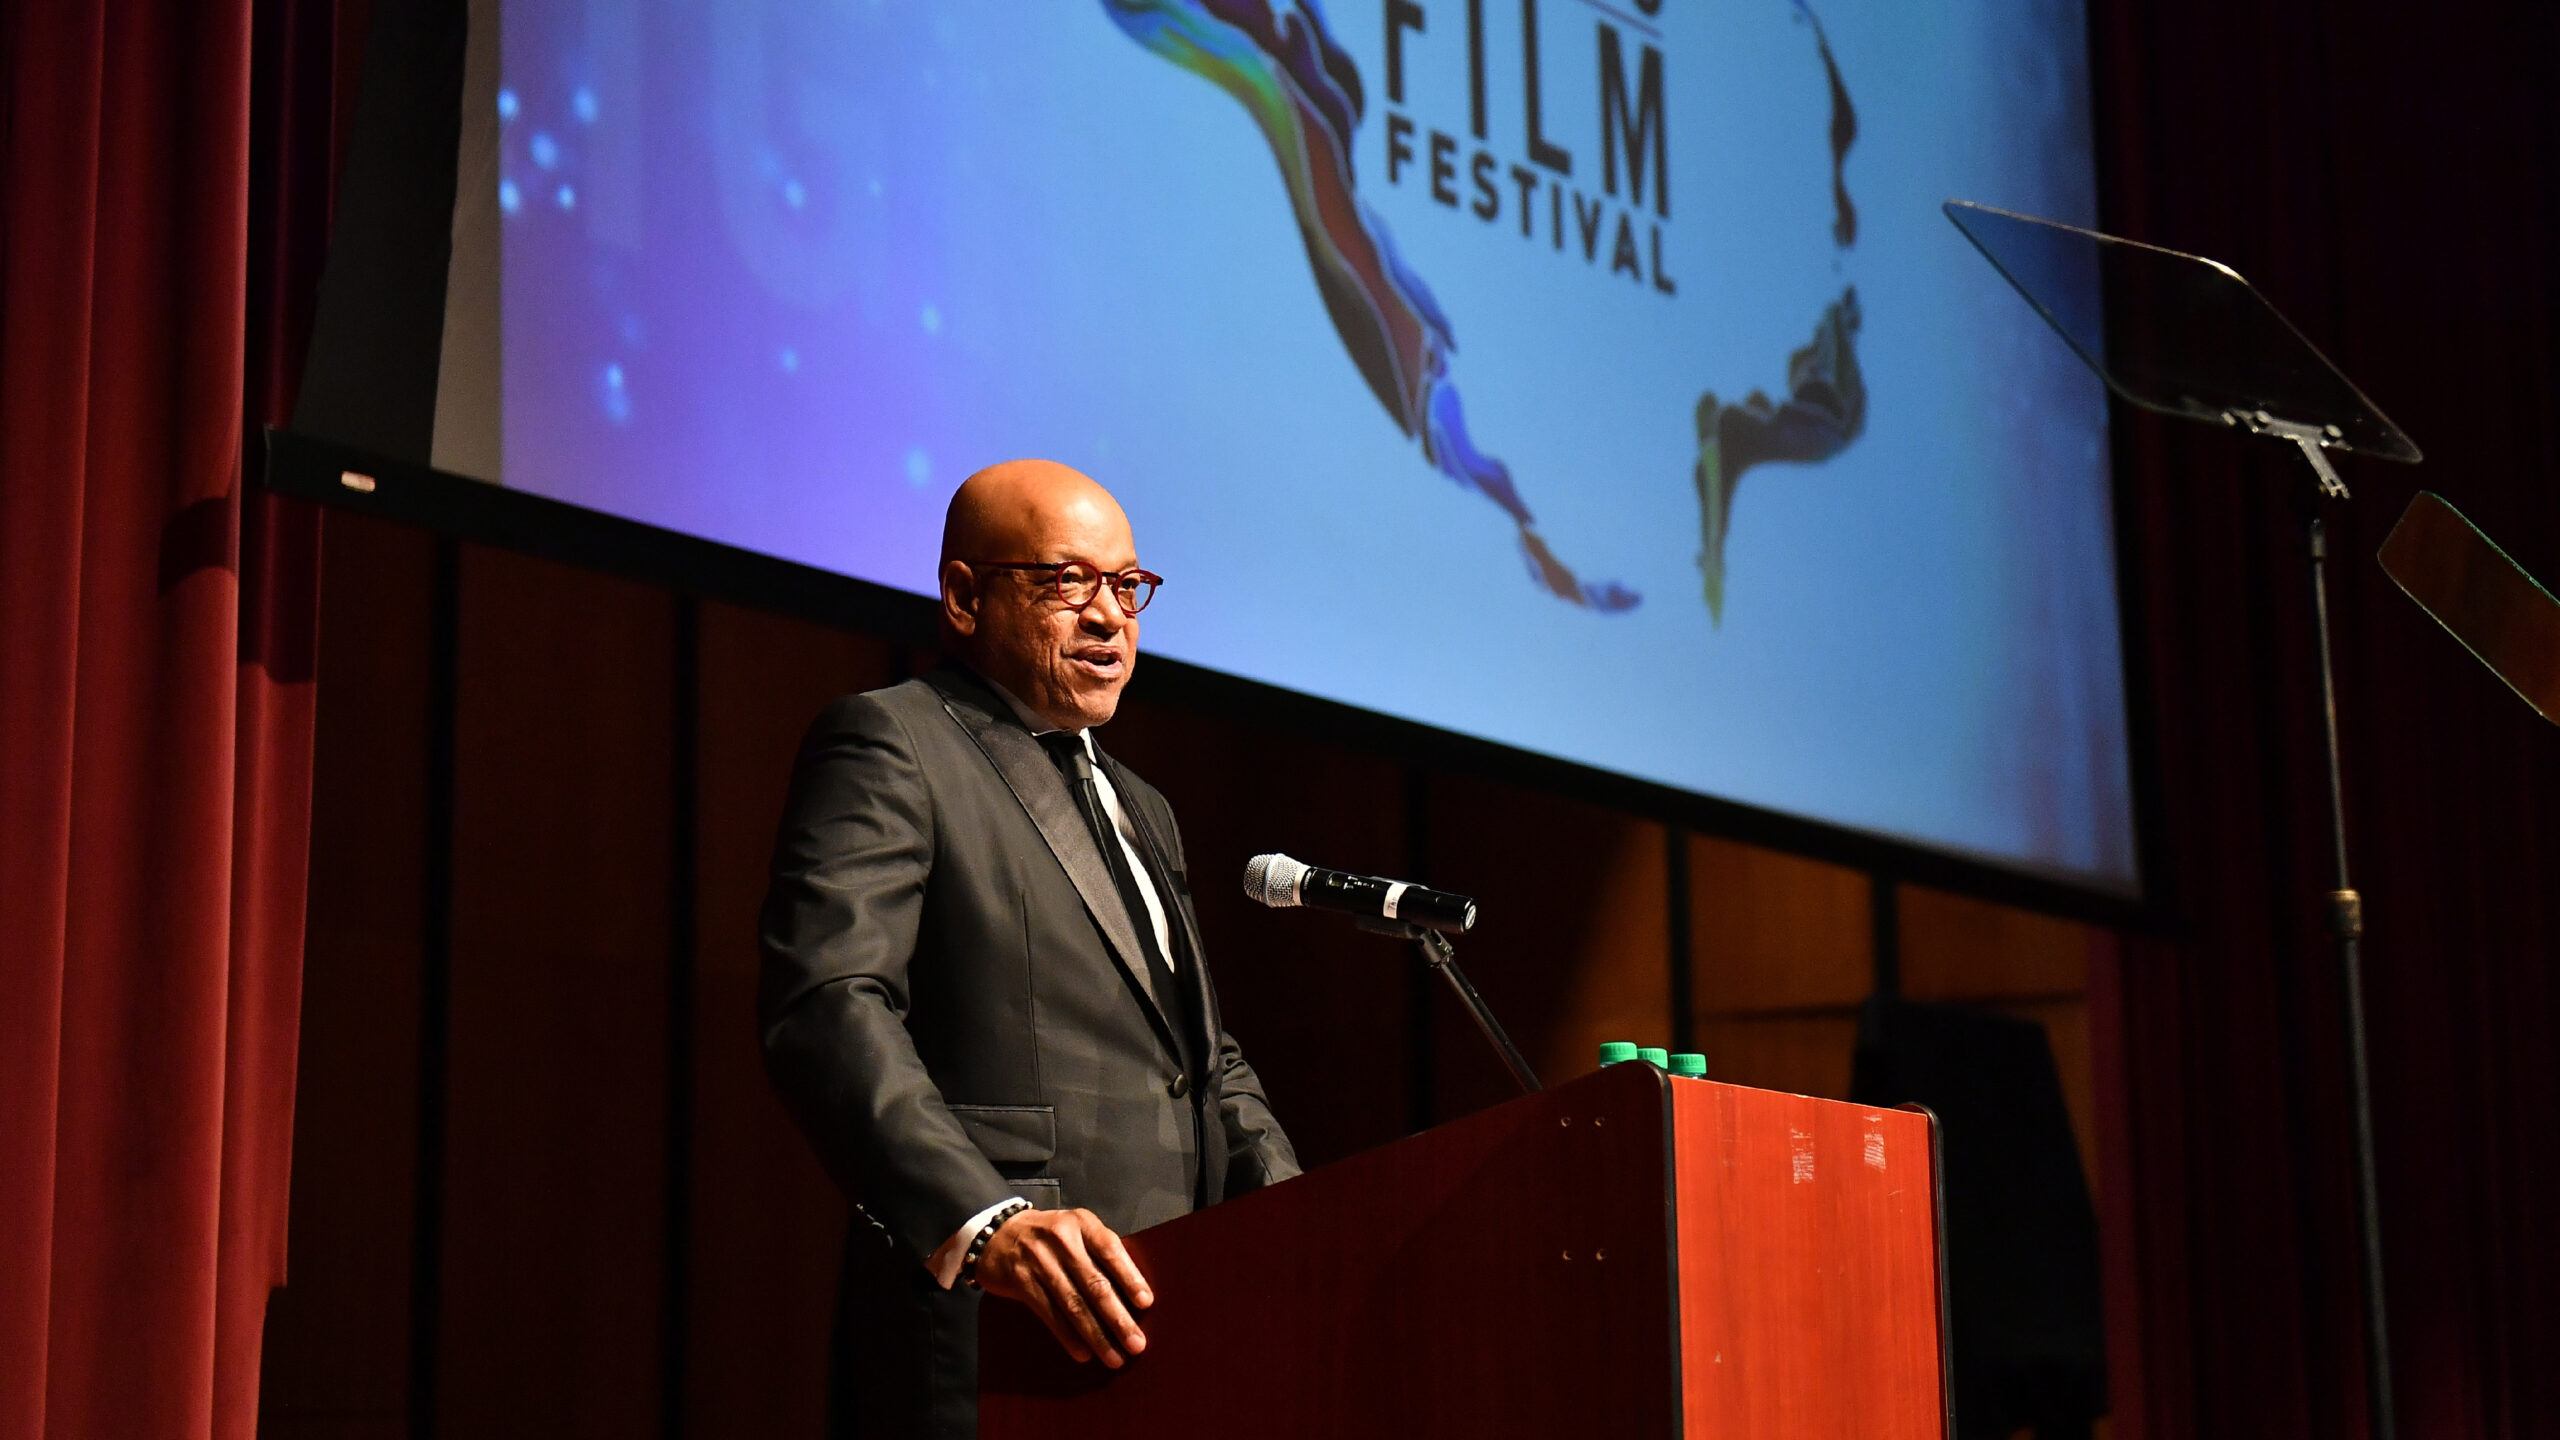 ATLANTA, GEORGIA - OCTOBER 12: Morehouse President Dr. David A. Thomas speaks onstage during 1st Annual Morehouse College Human Rights Film Festival Awards Ceremony at Ray Charles Performing Arts Center on October 12, 2019 in Atlanta, Georgia. (Photo by Paras Griffin/Getty Images)